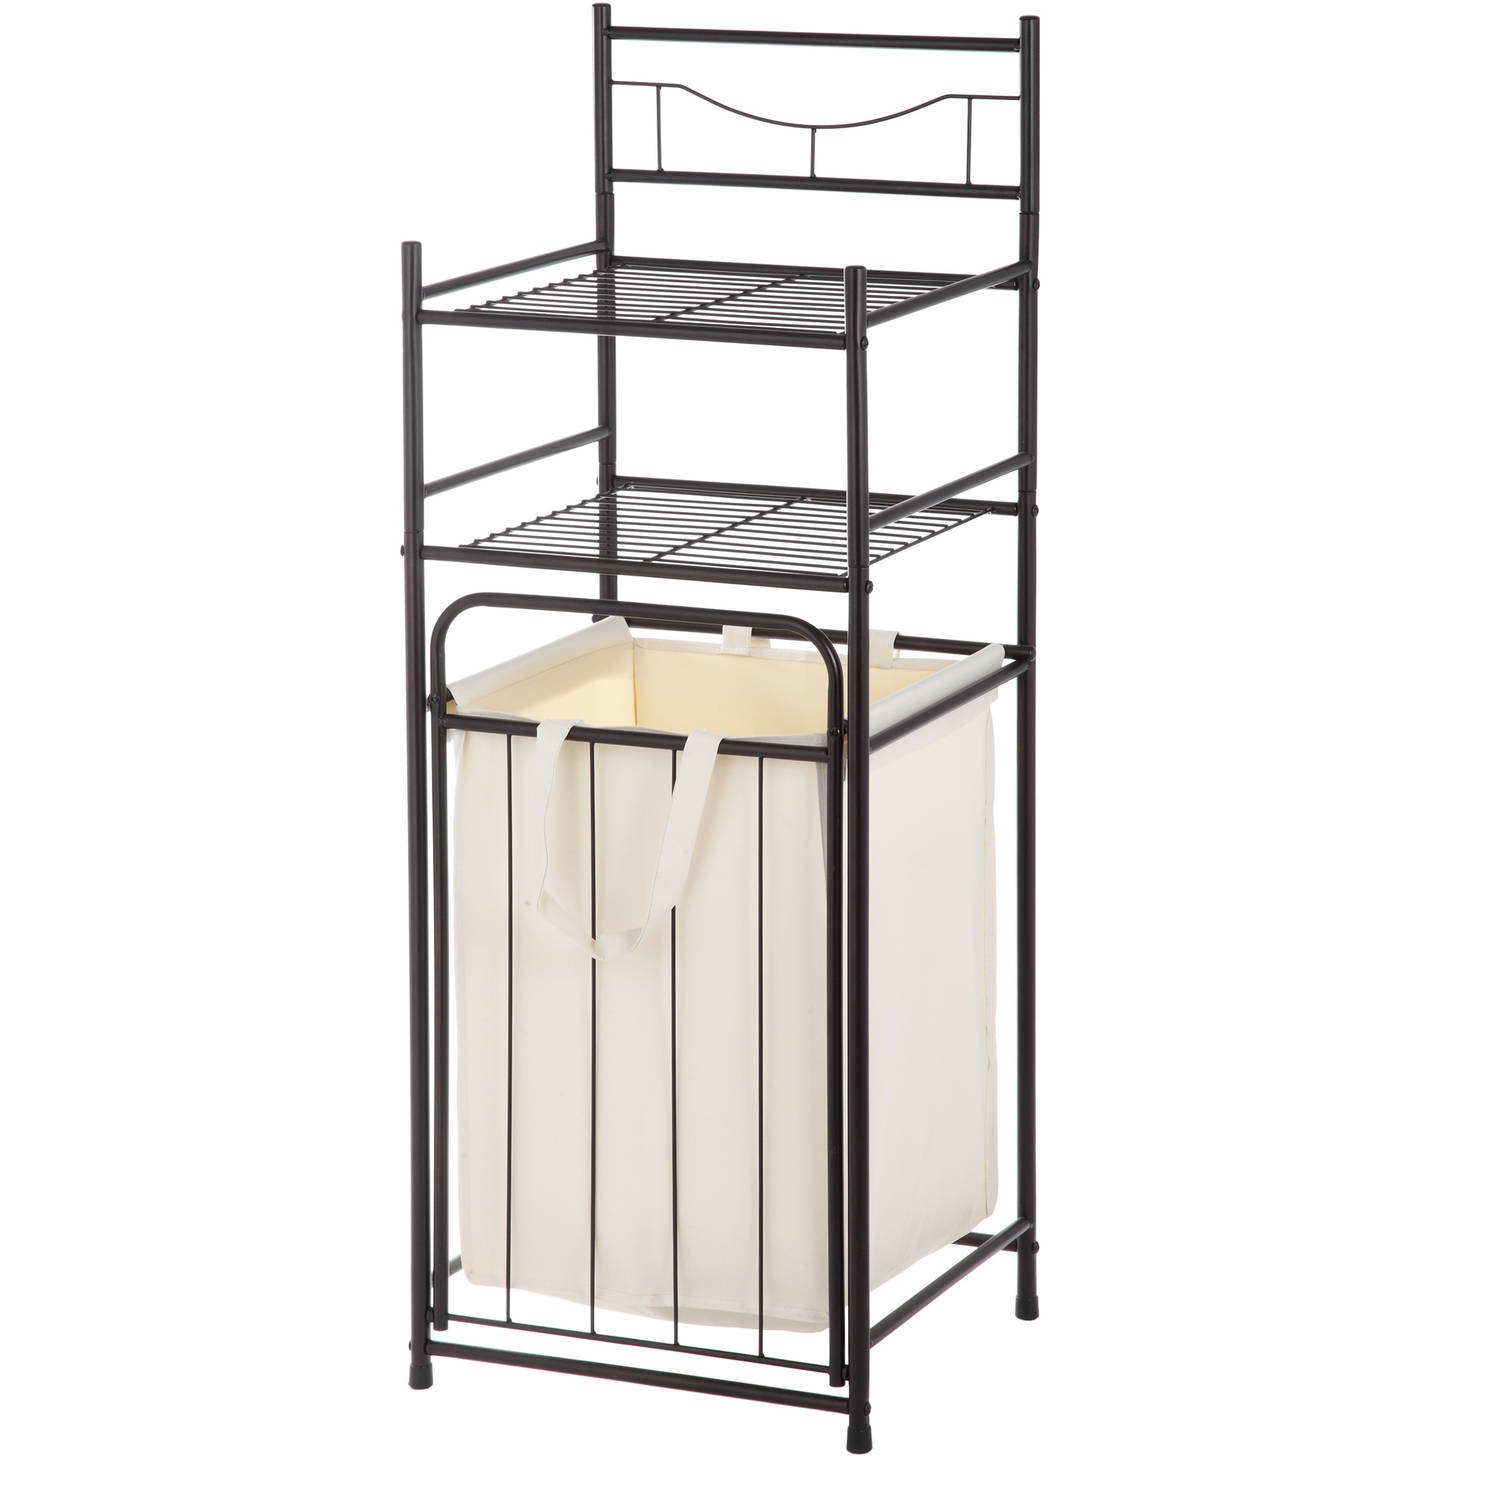 Mainstays Bathroom Tower with Hamper, Oil Rubbed Bronze